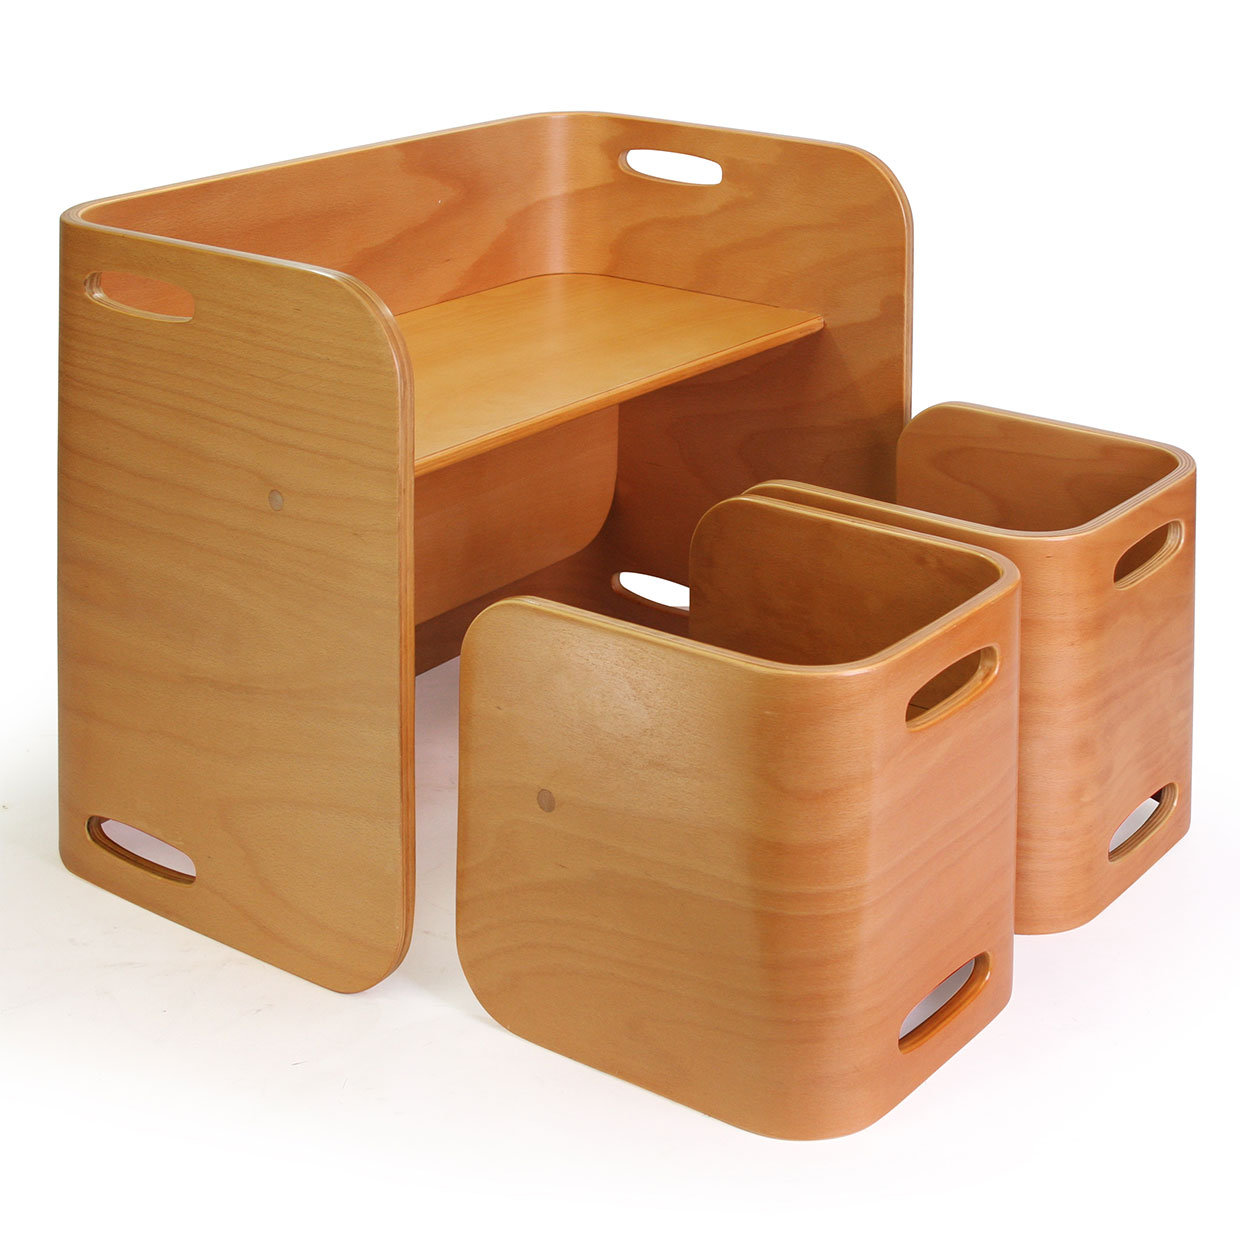 Colo Colo By Hoppl Multifunctional Designer Children S Furniture